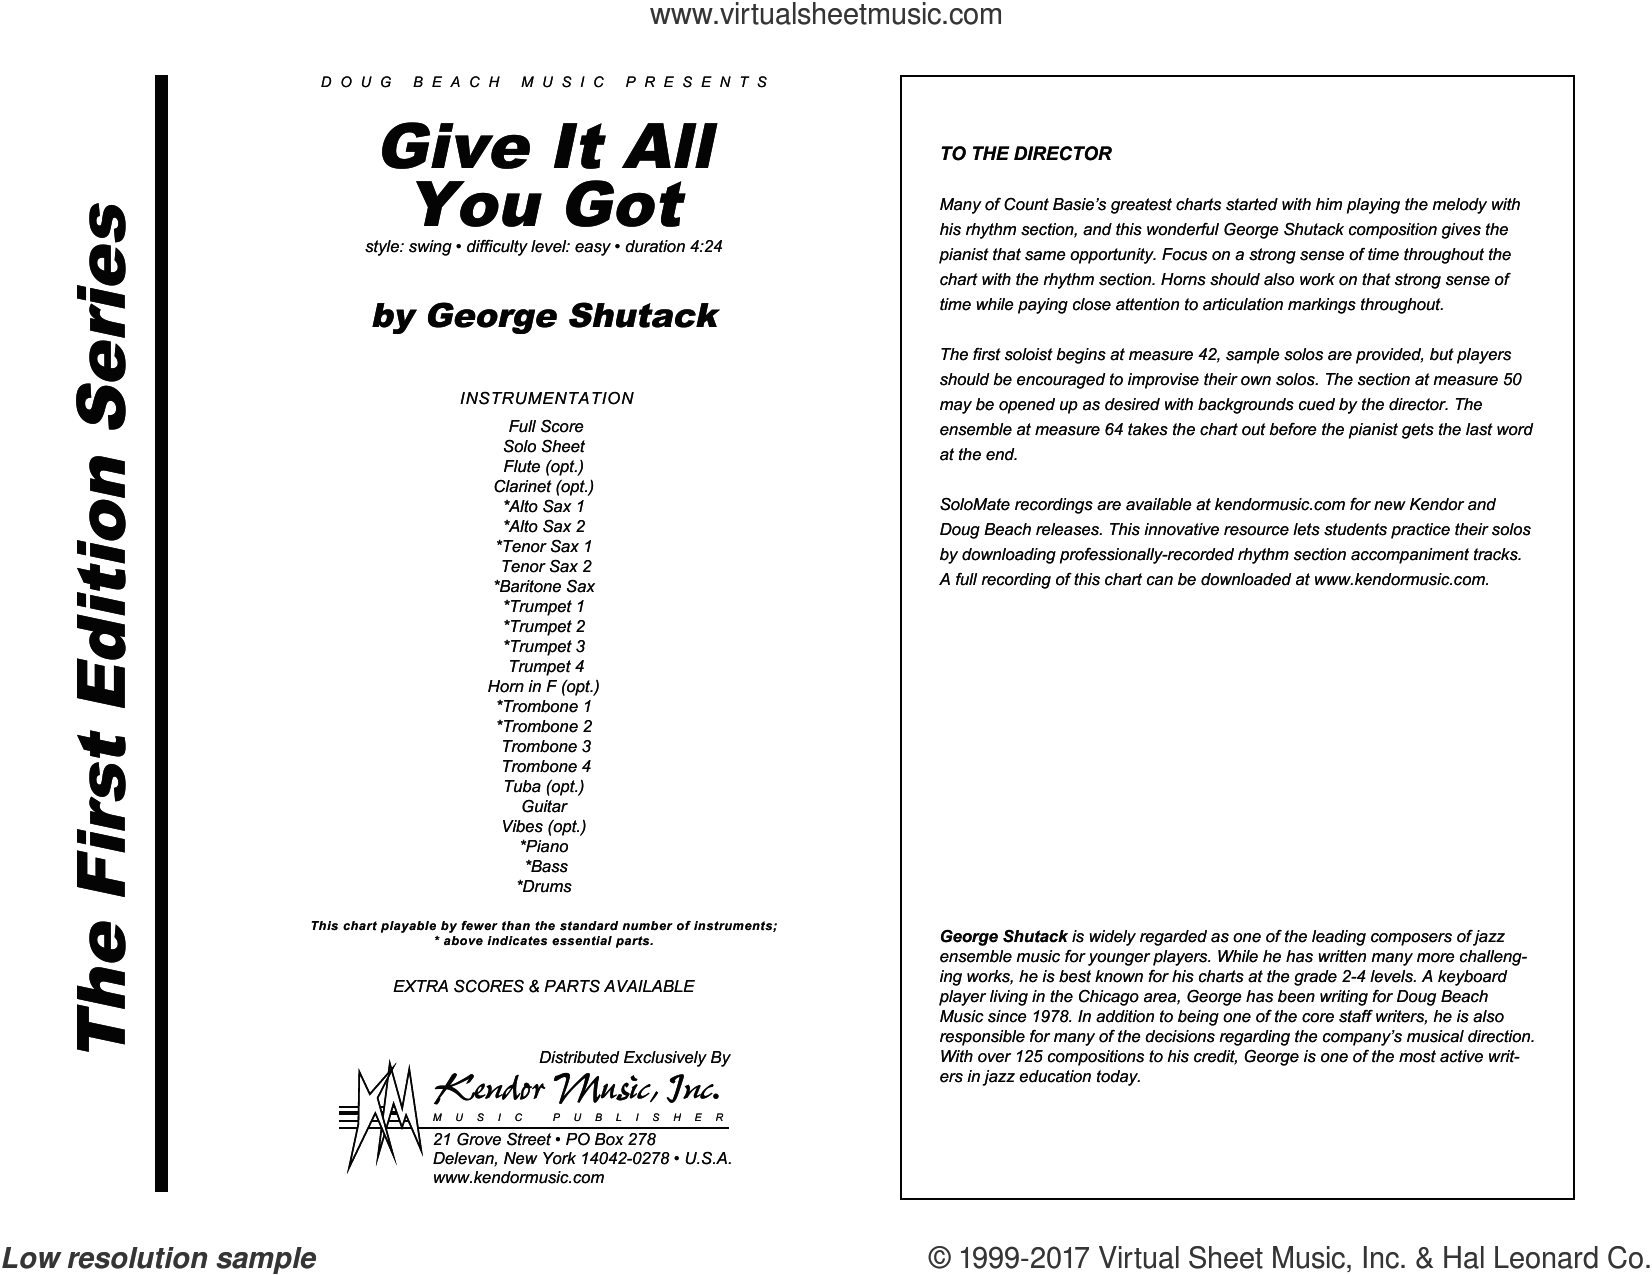 Shutack - Give It All You Got sheet music (complete collection) for jazz  band